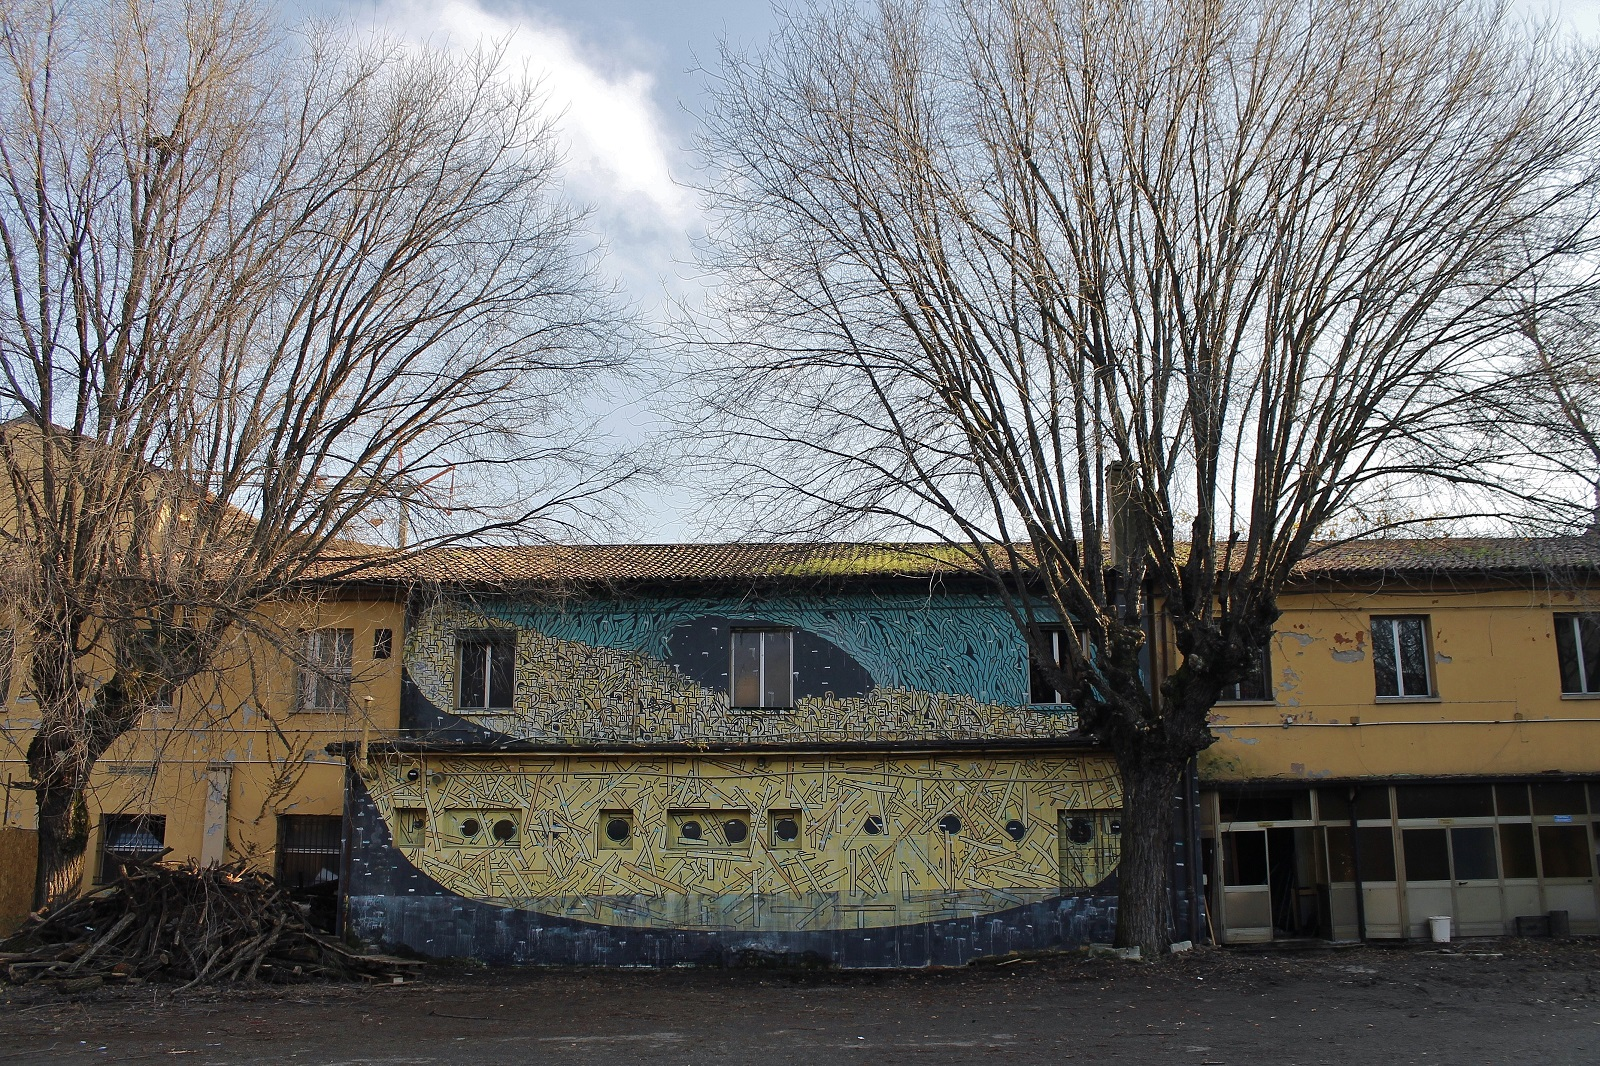 crisa-new-mural-at-labas-in-bologna-04